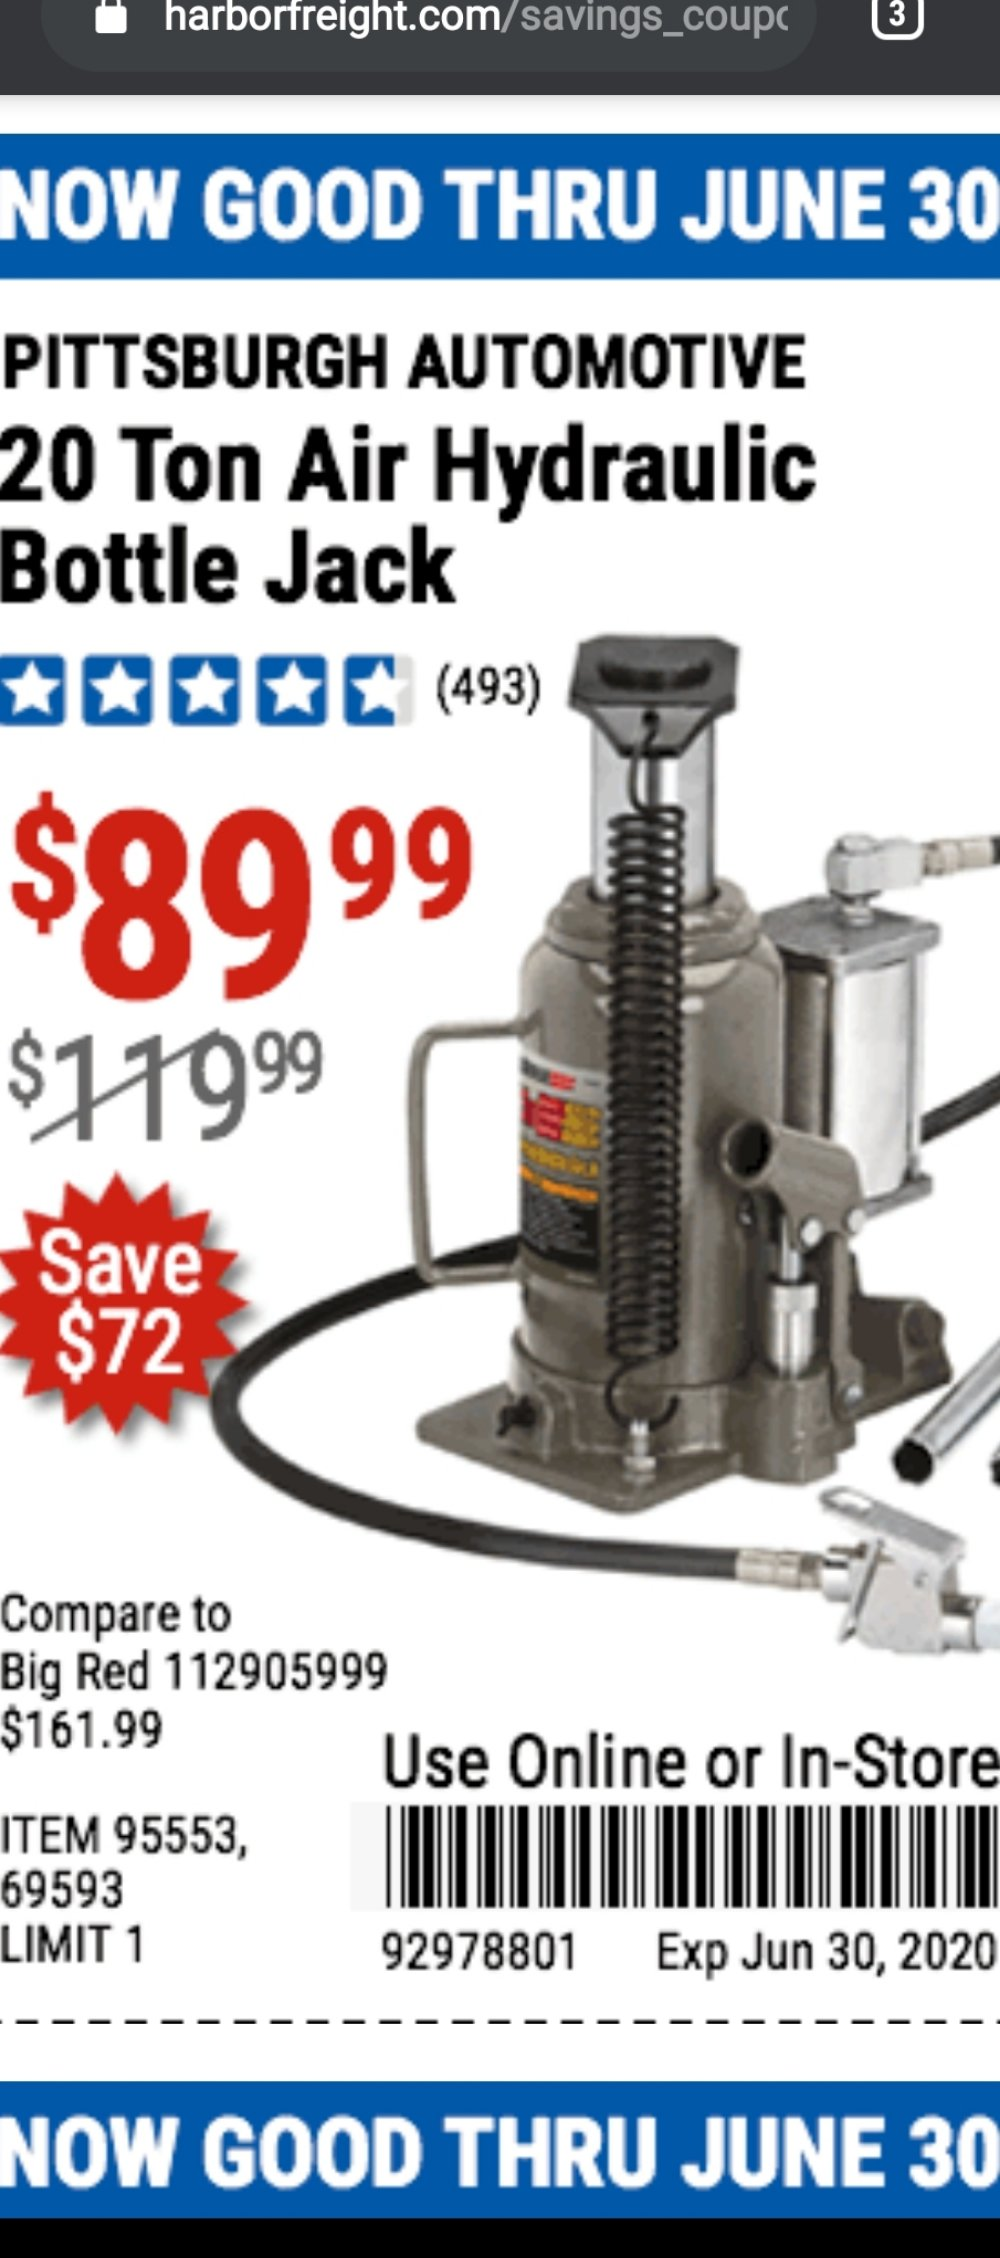 Harbor Freight Coupon, HF Coupons - 20 Ton Air/hydraulic Bottle Jack